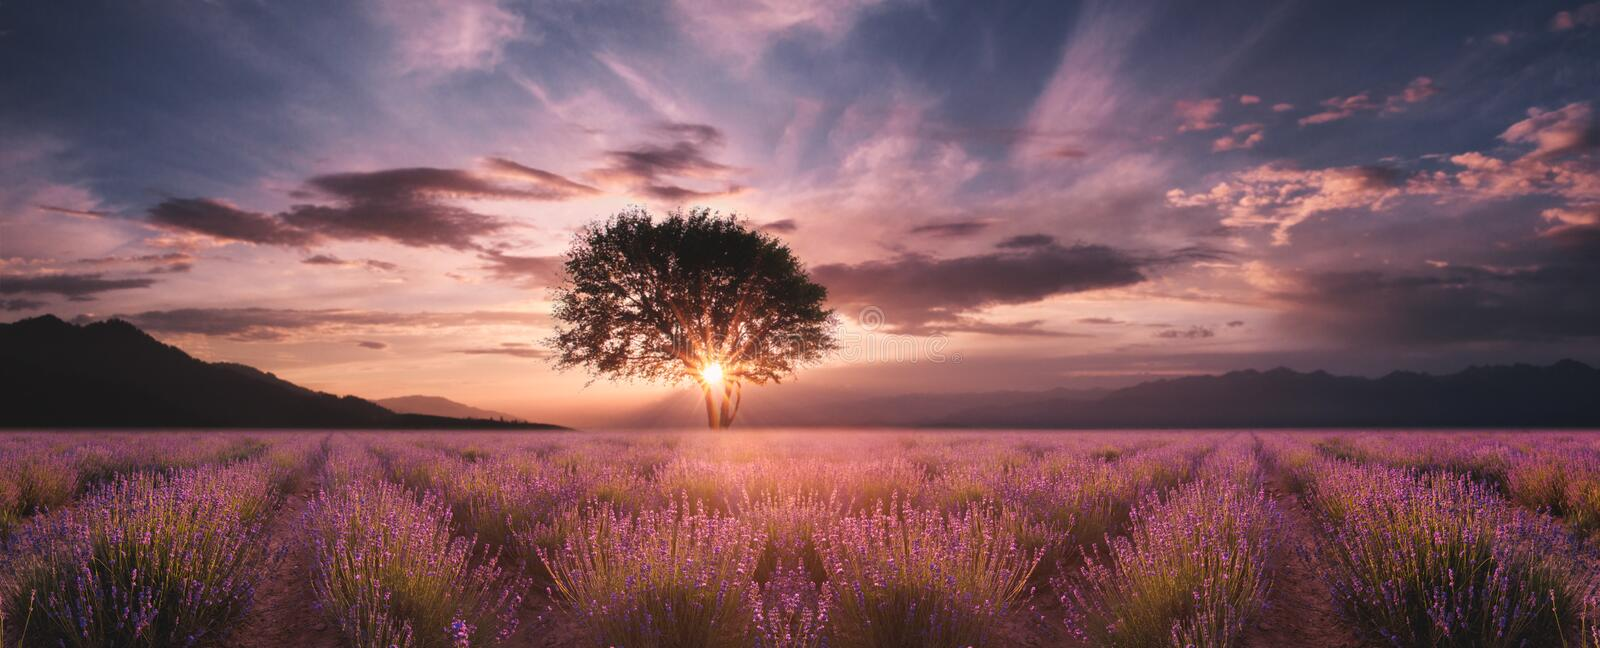 Lavender field at sunset. Lavender field and lonely tree at sunset royalty free stock image